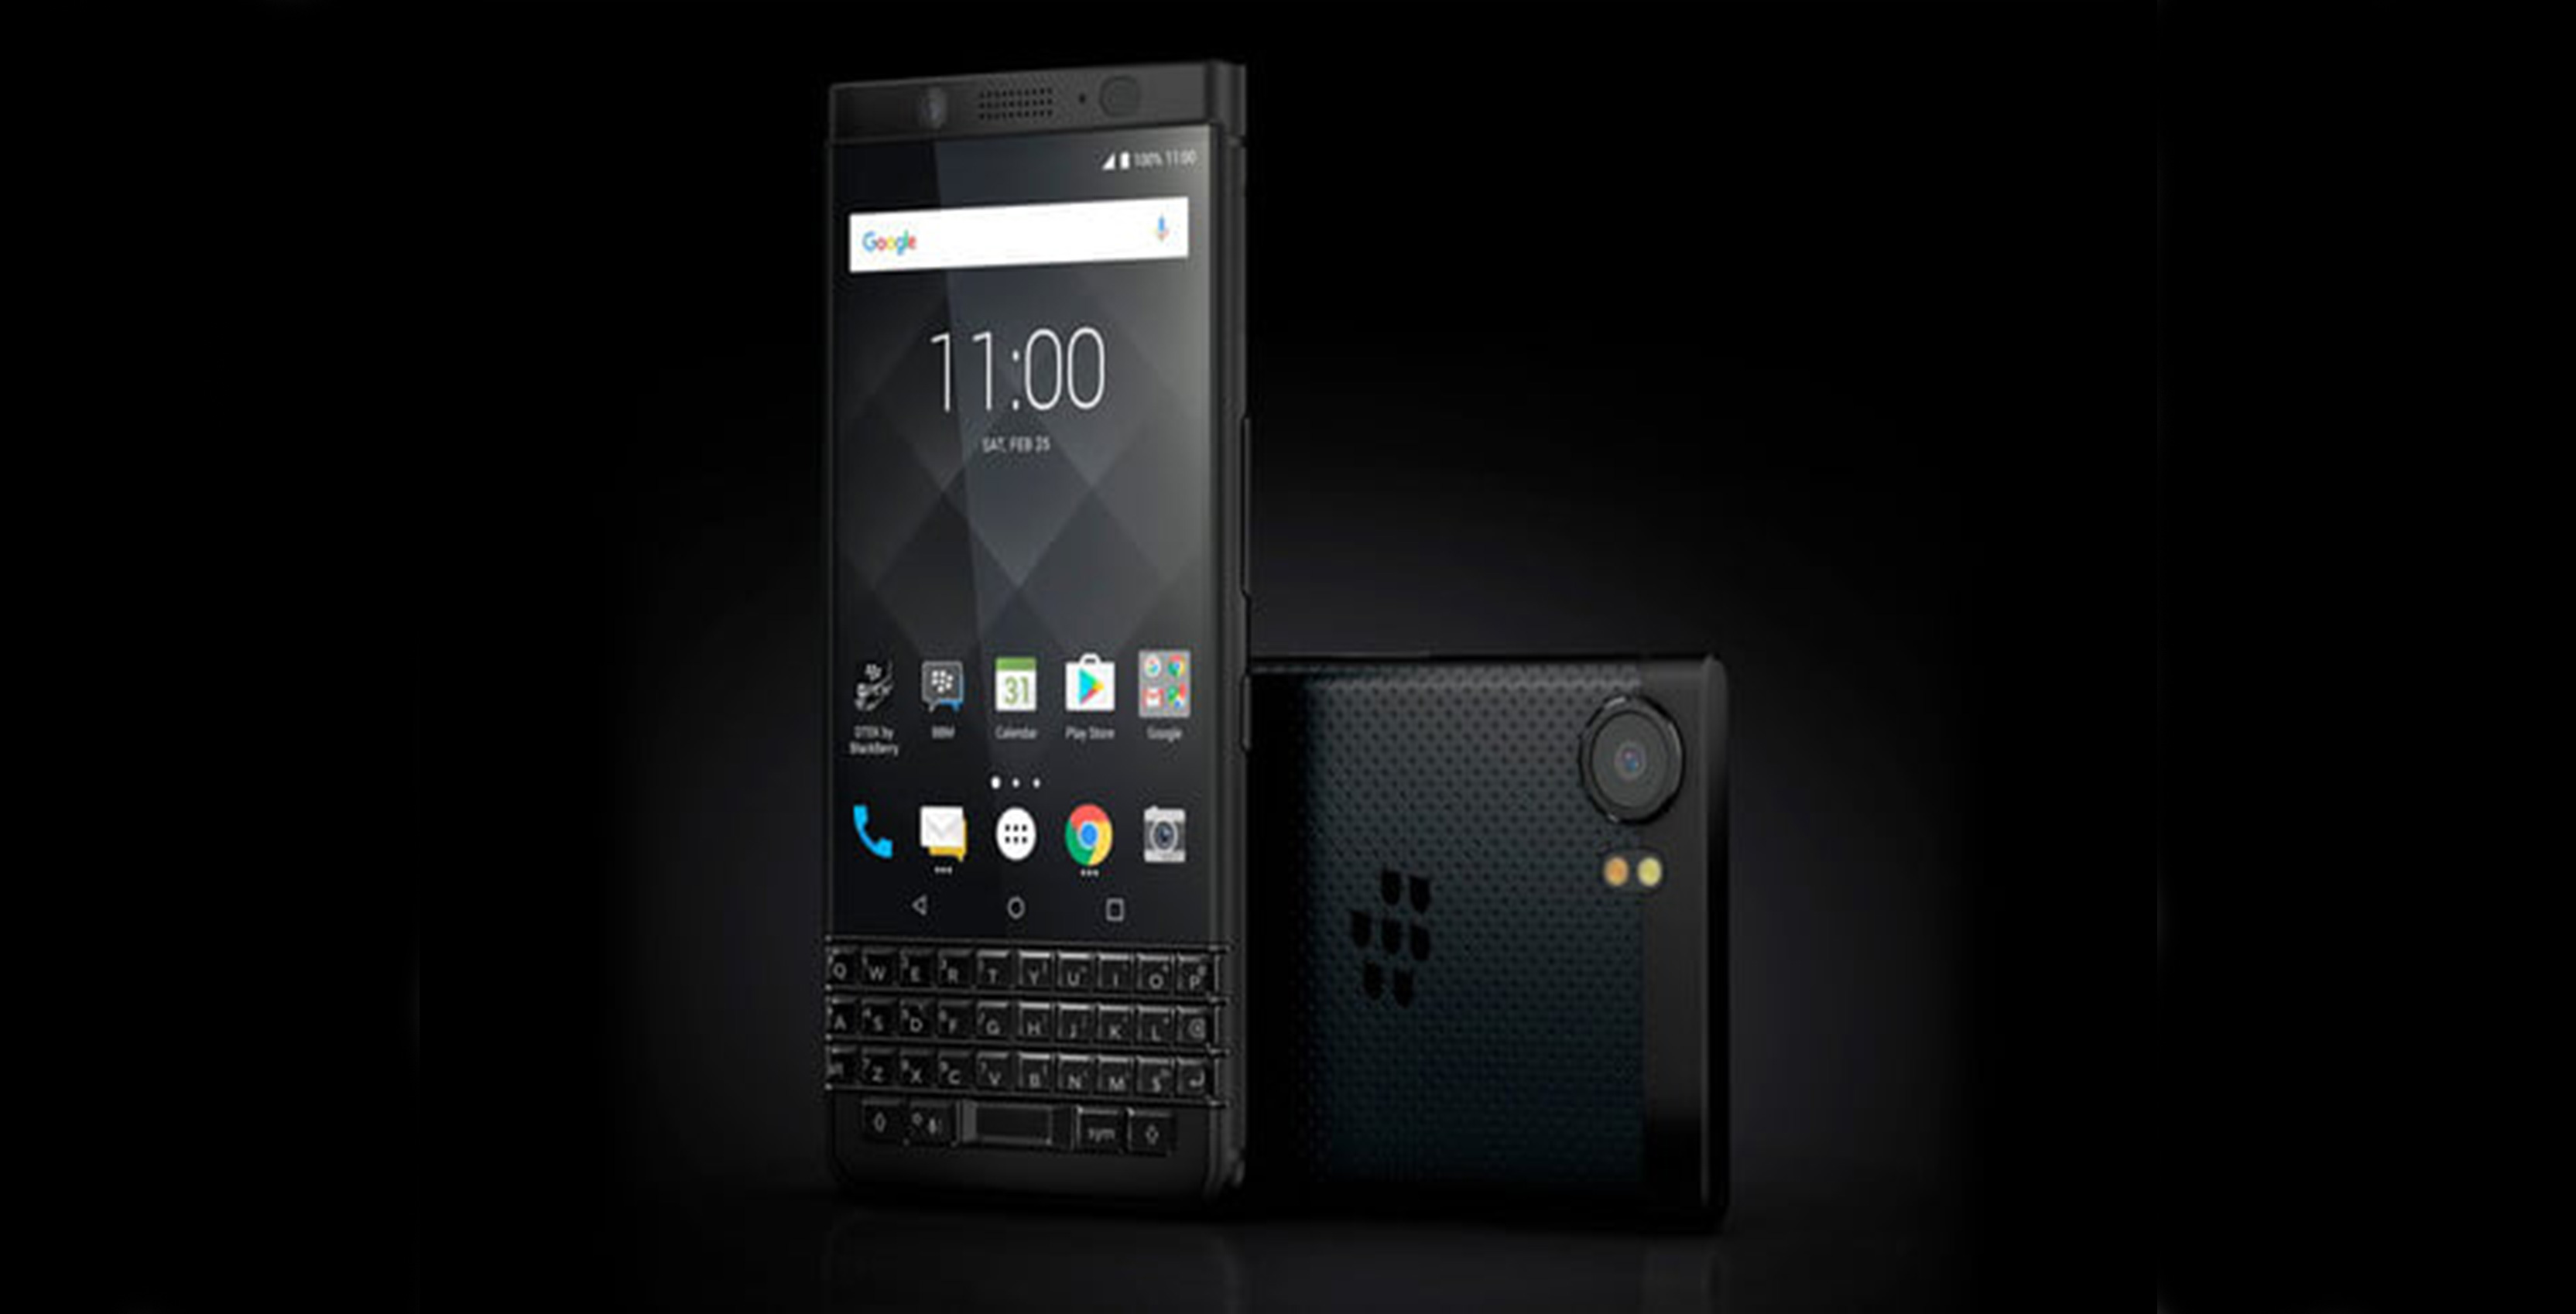 Blackberry KEYone is now available for sale in India